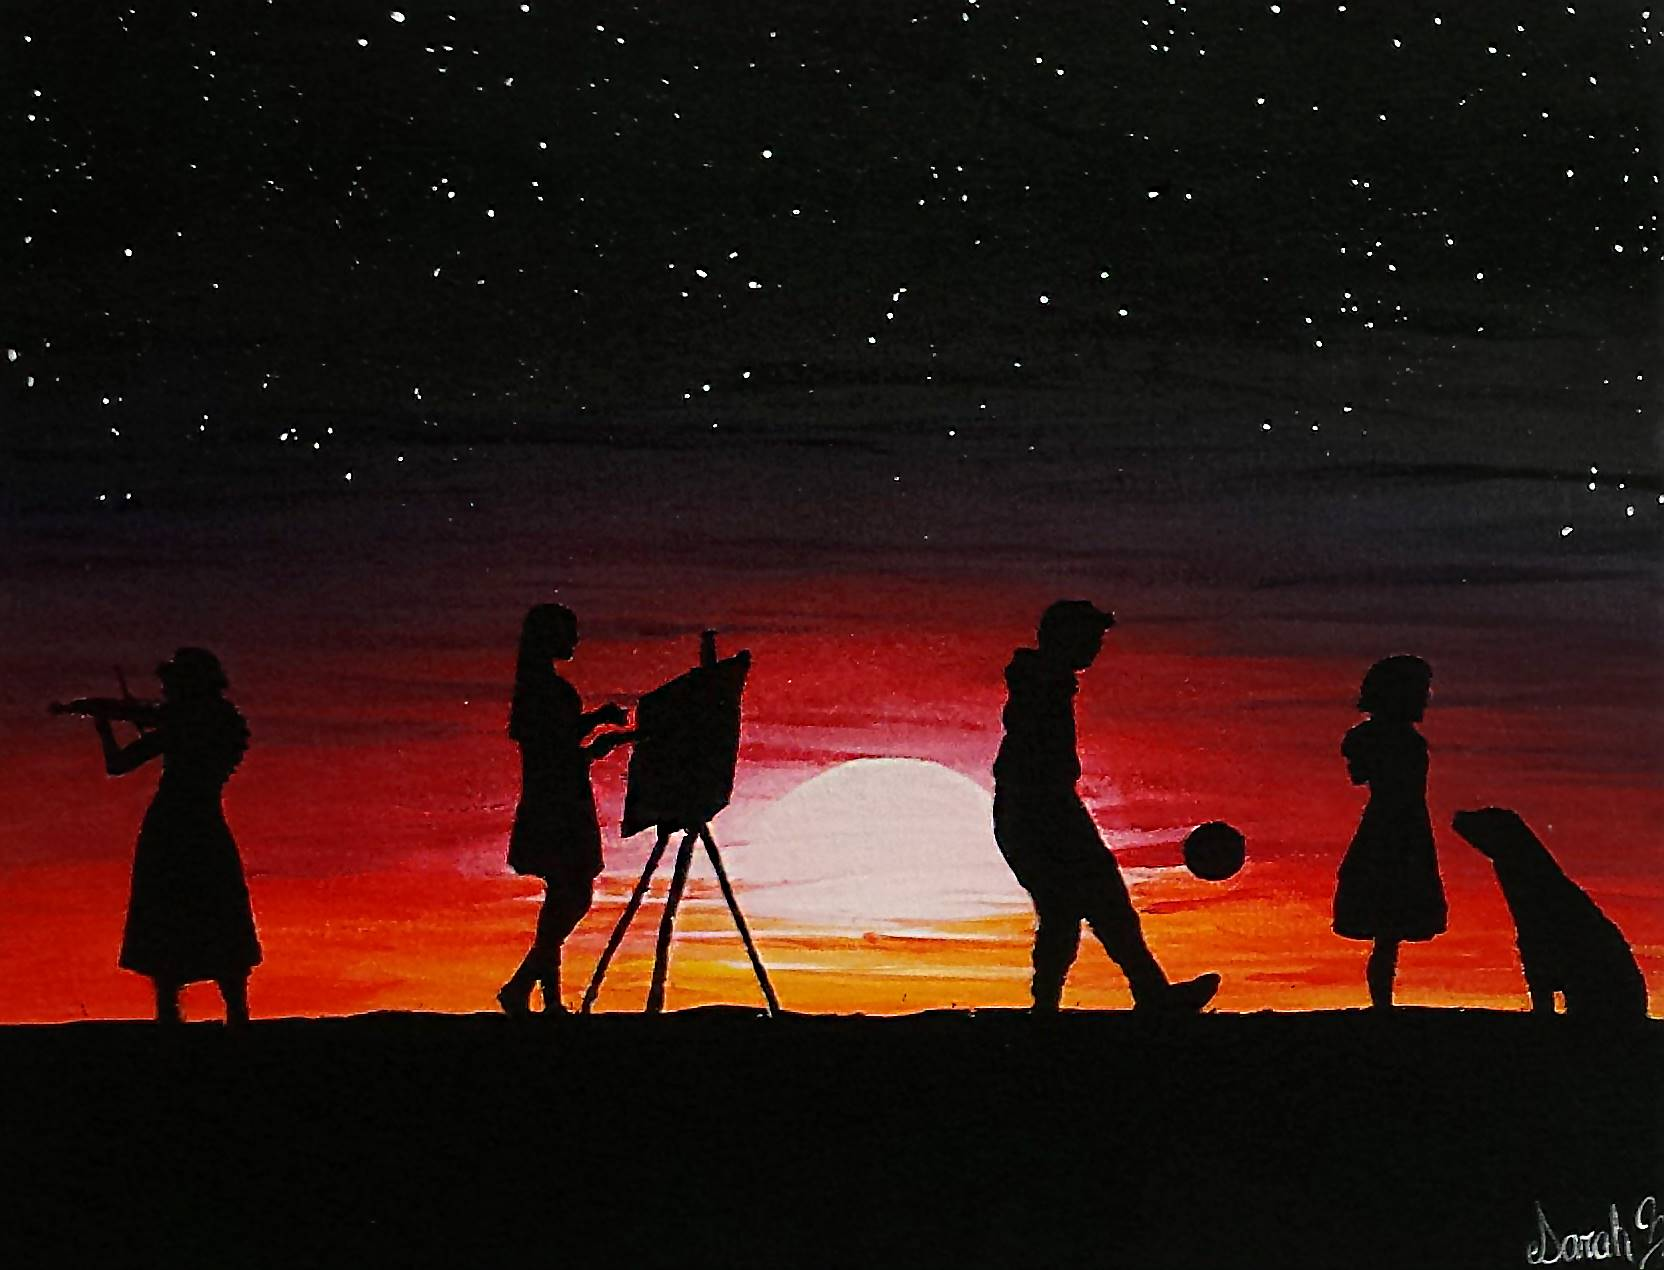 Acrylic painting of silhouettes of a girl playing violin, a girl painting with a canvas on an easel,